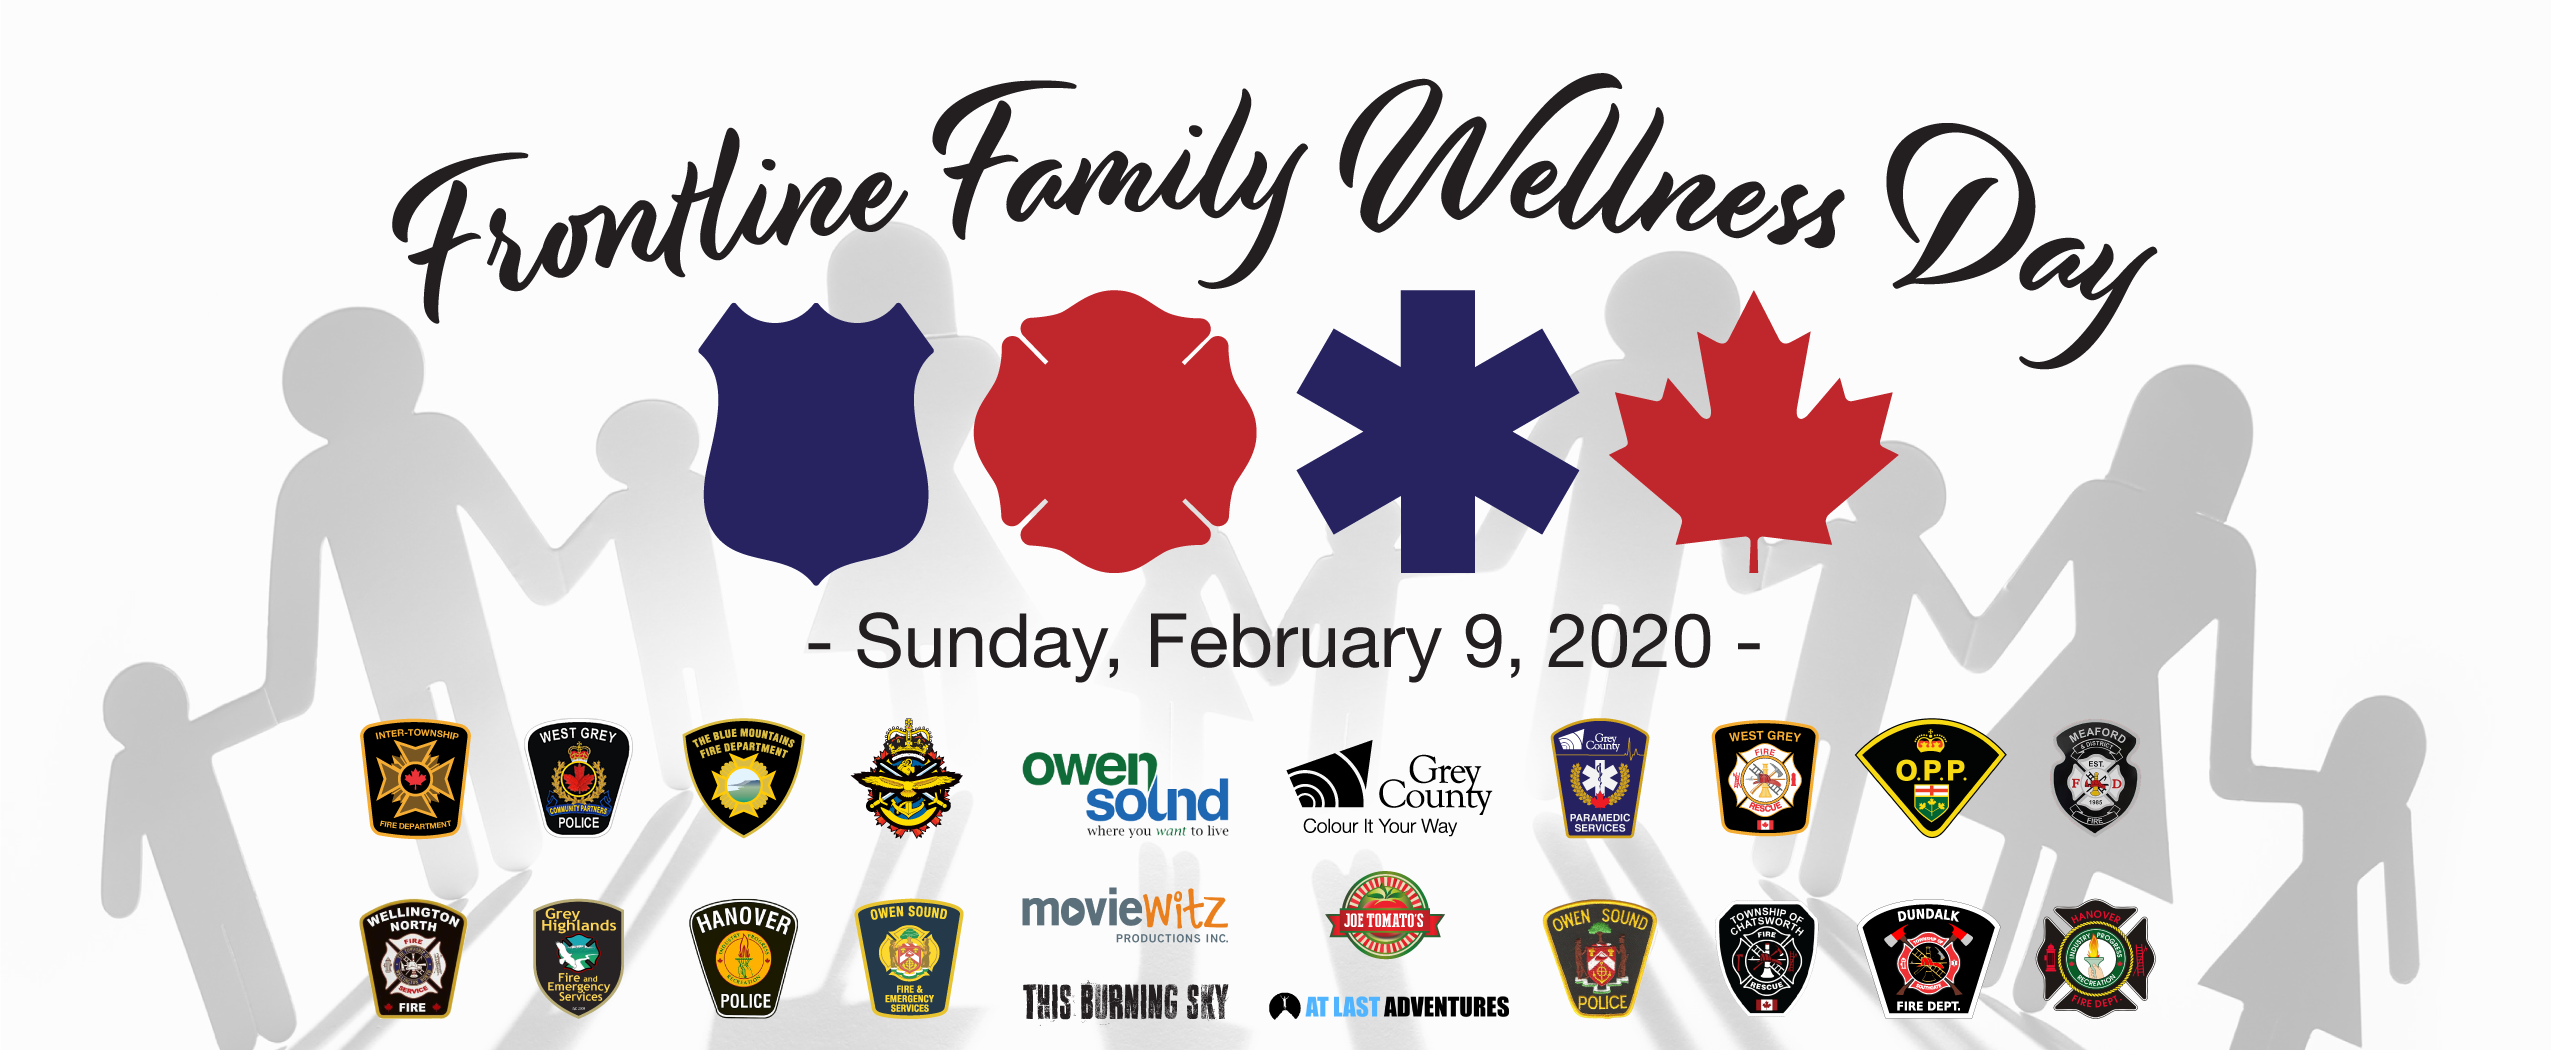 Frontline Family Wellness Day poster with all the partner logos